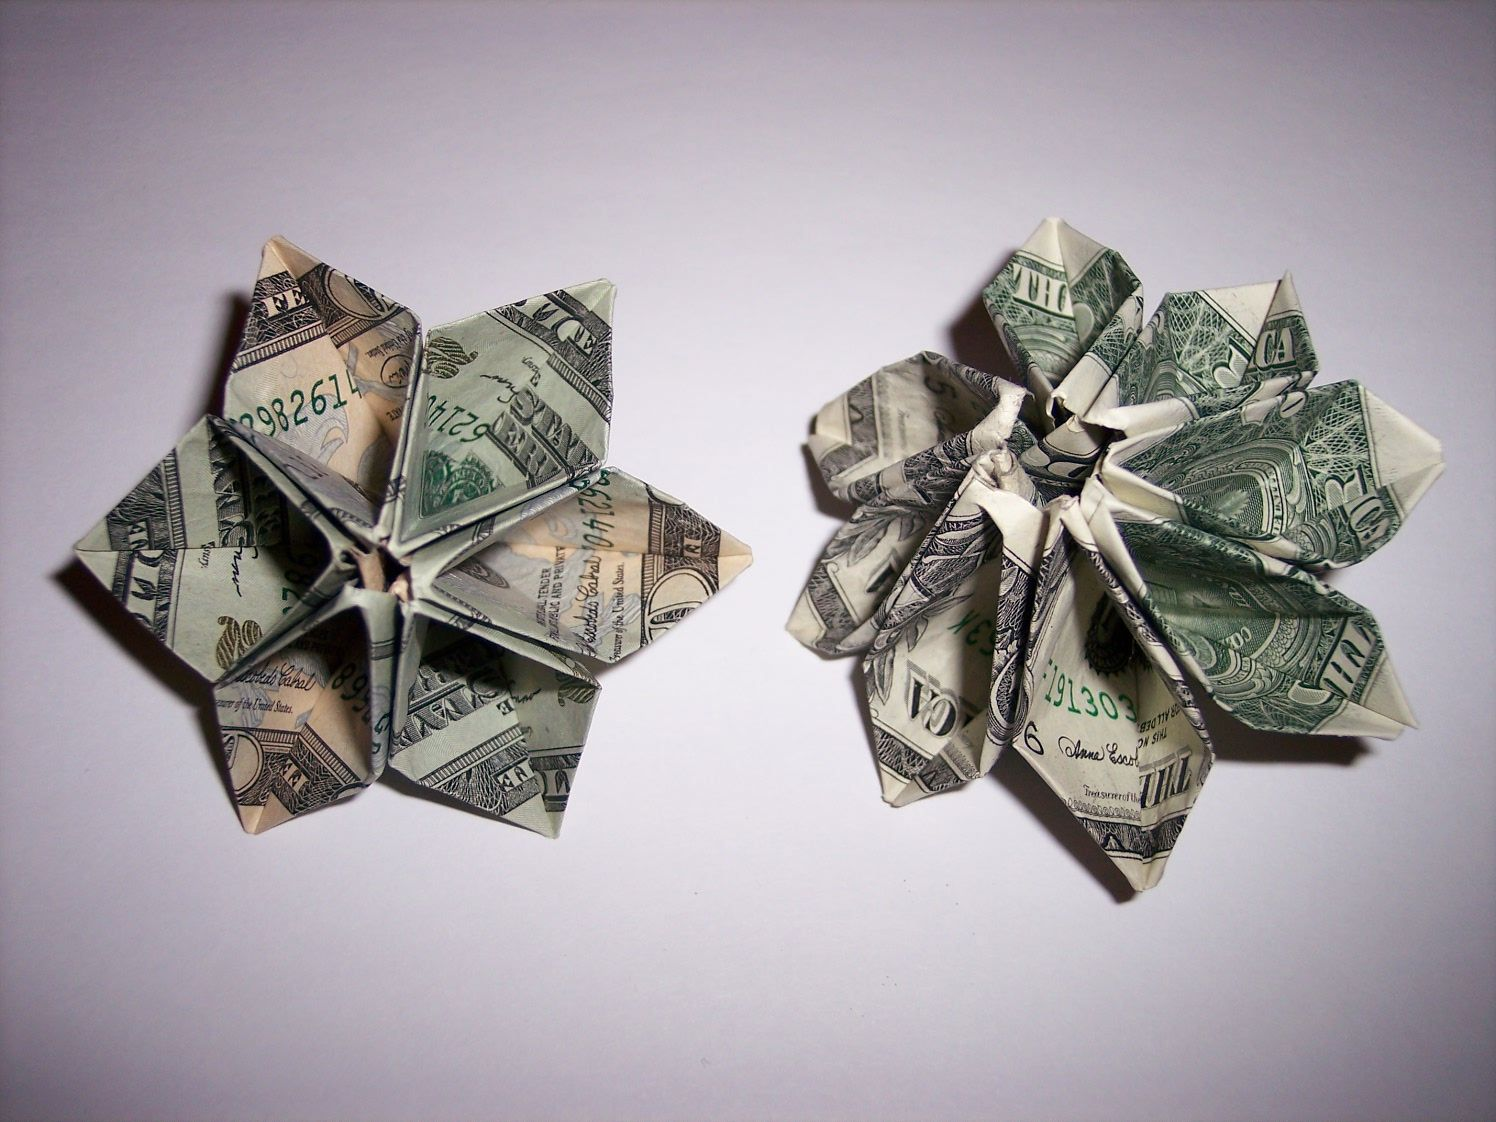 Dollar bills strike again the dollar bill modular flower and other dollar bills strike again the dollar bill modular flower and other mightylinksfo